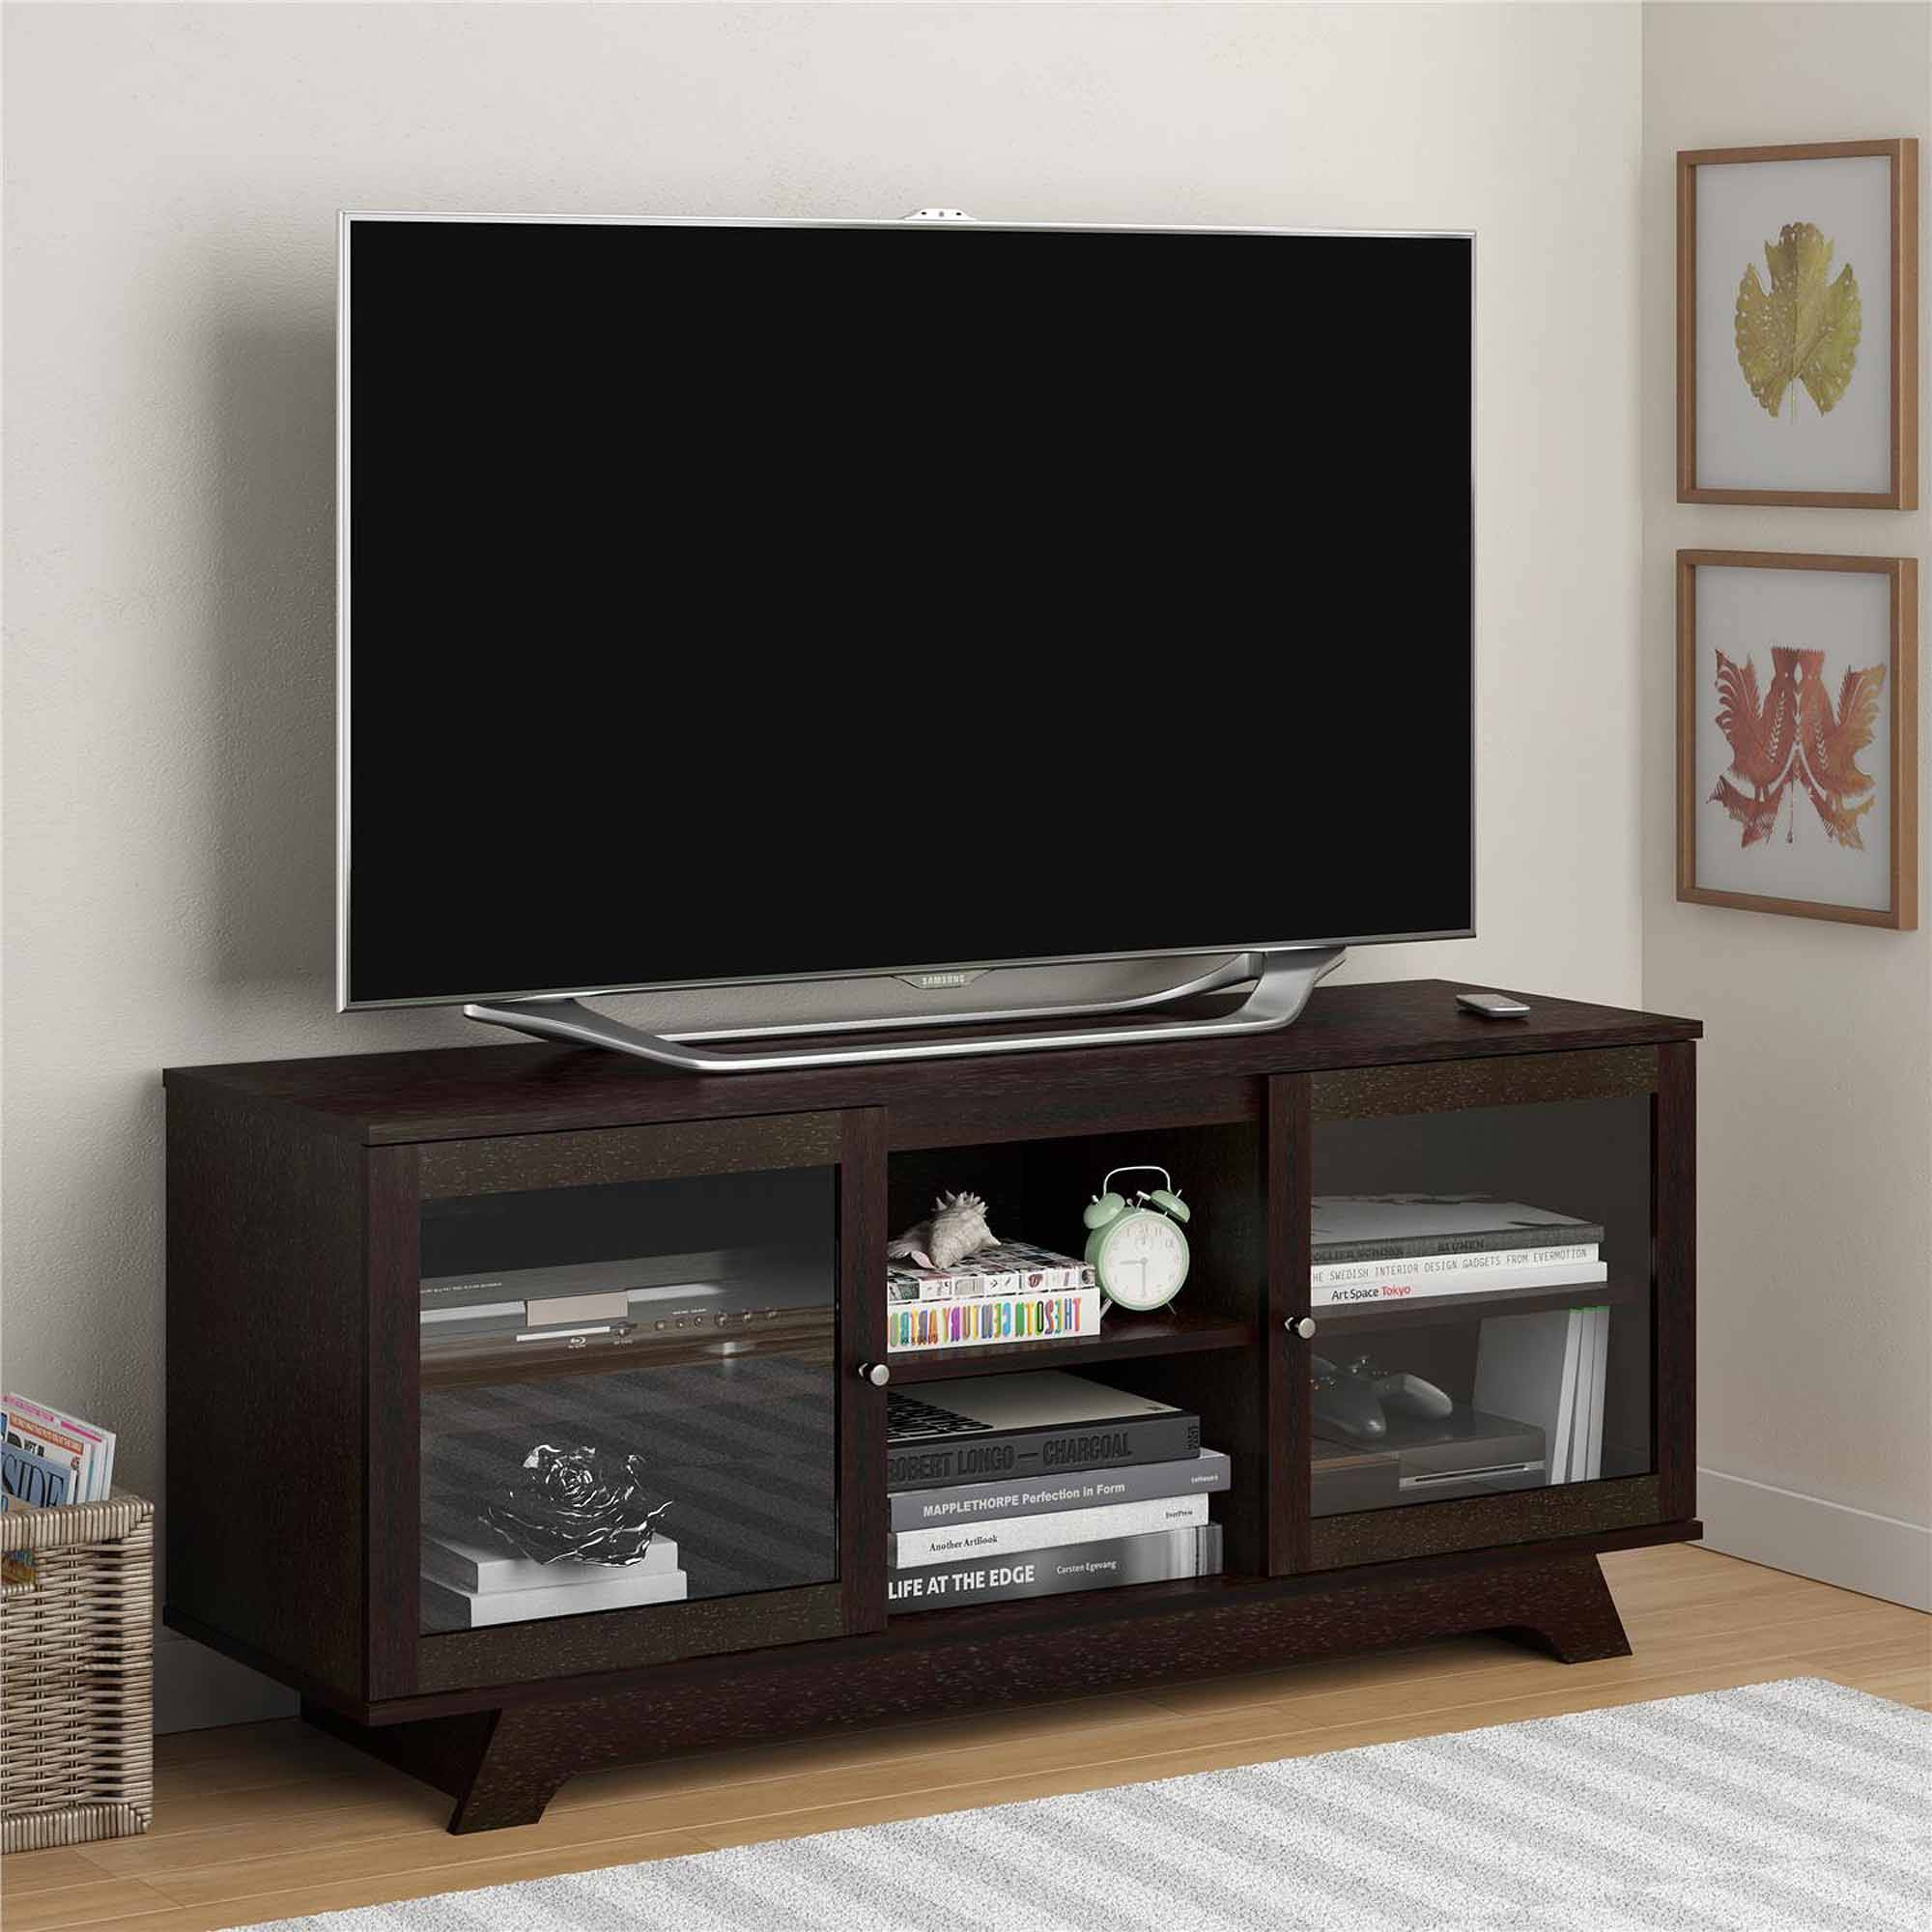 Sauder Harvest Mill Panel Tv Stand – Abbey Oak – Walmart Pertaining To Como Tv Stands (View 10 of 15)